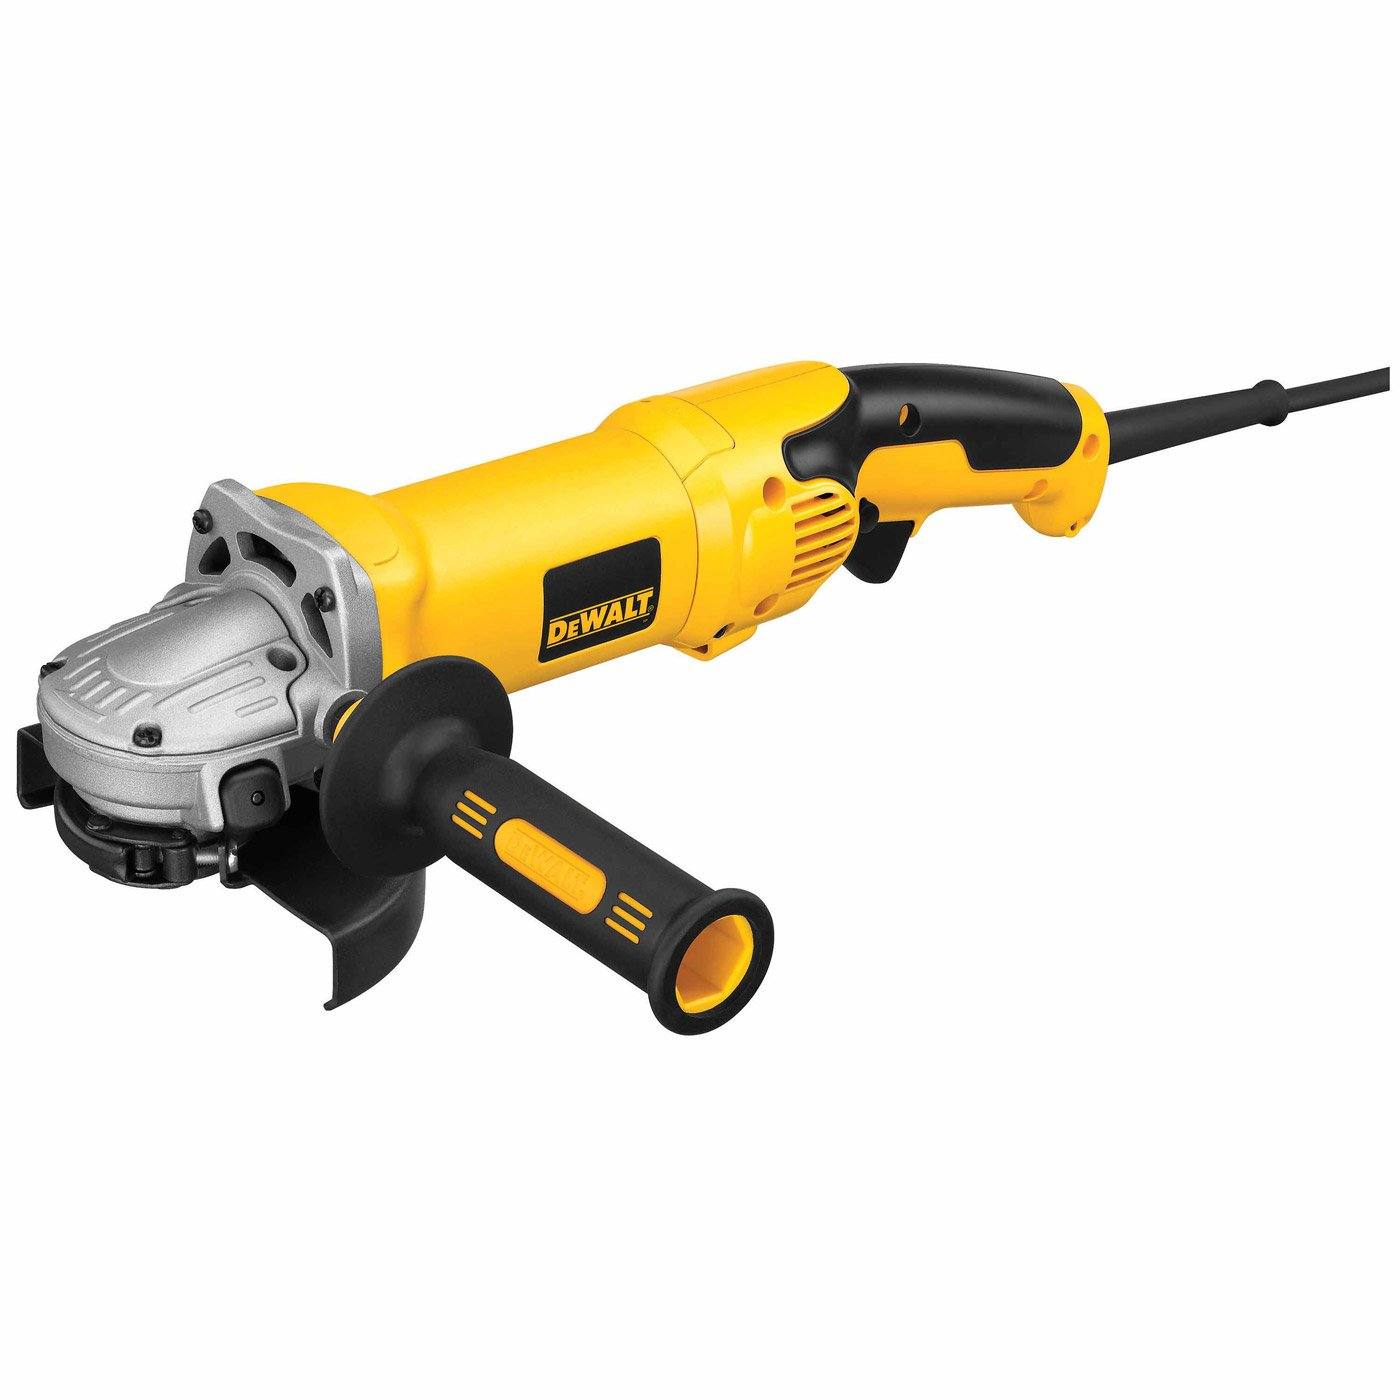 8. DeWalt D28115 - Best Heavy Duty Angle Grinder